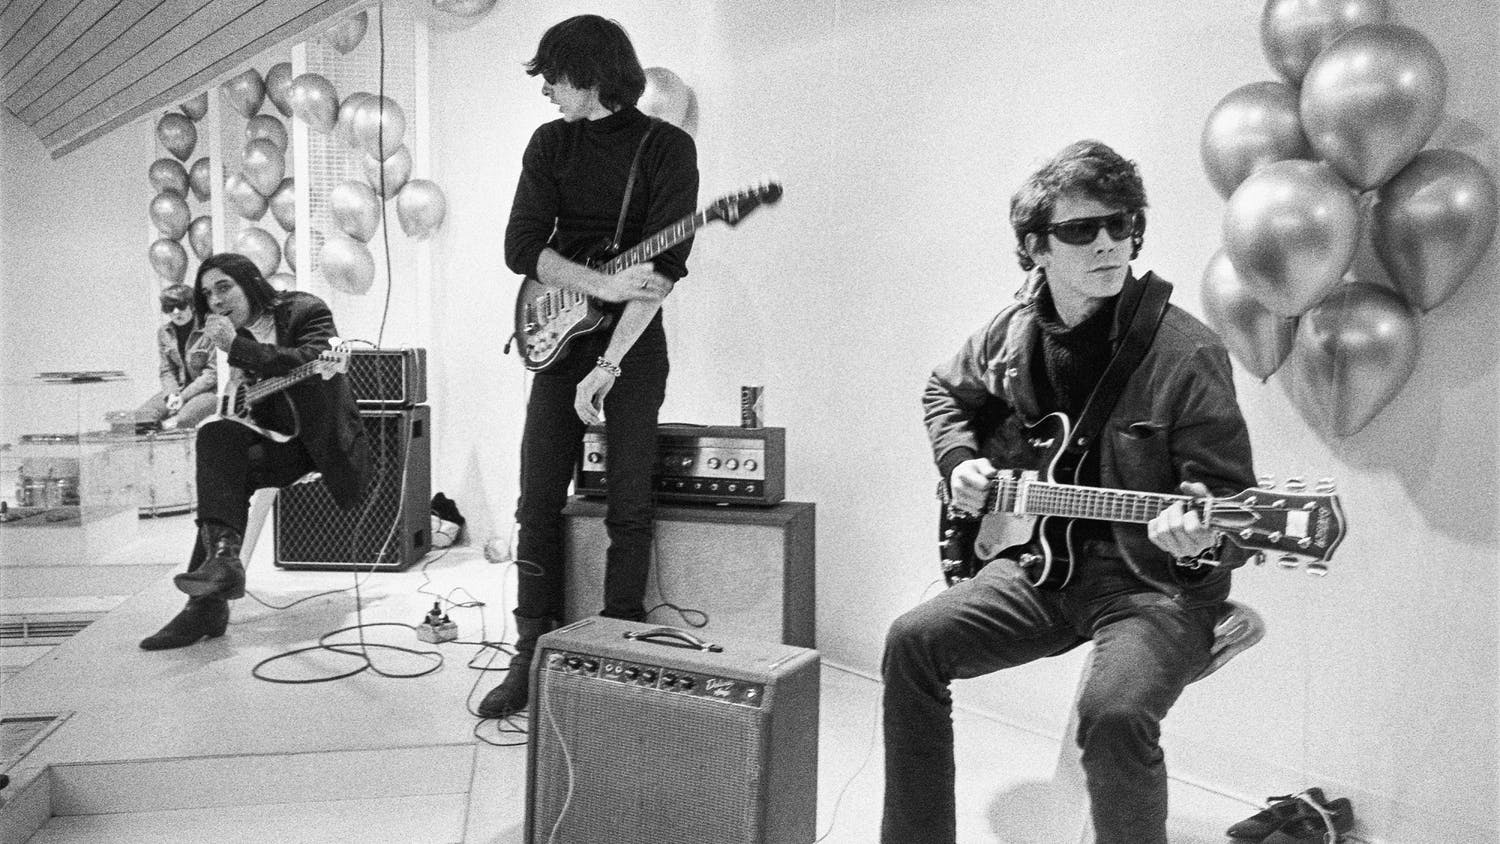 """From left, Maureen """"Moe"""" Tucker, John Cale, Sterling Morrison and Lou Reed from archival photography from """"The Velvet Underground,"""" streaming now on Apple TV+."""